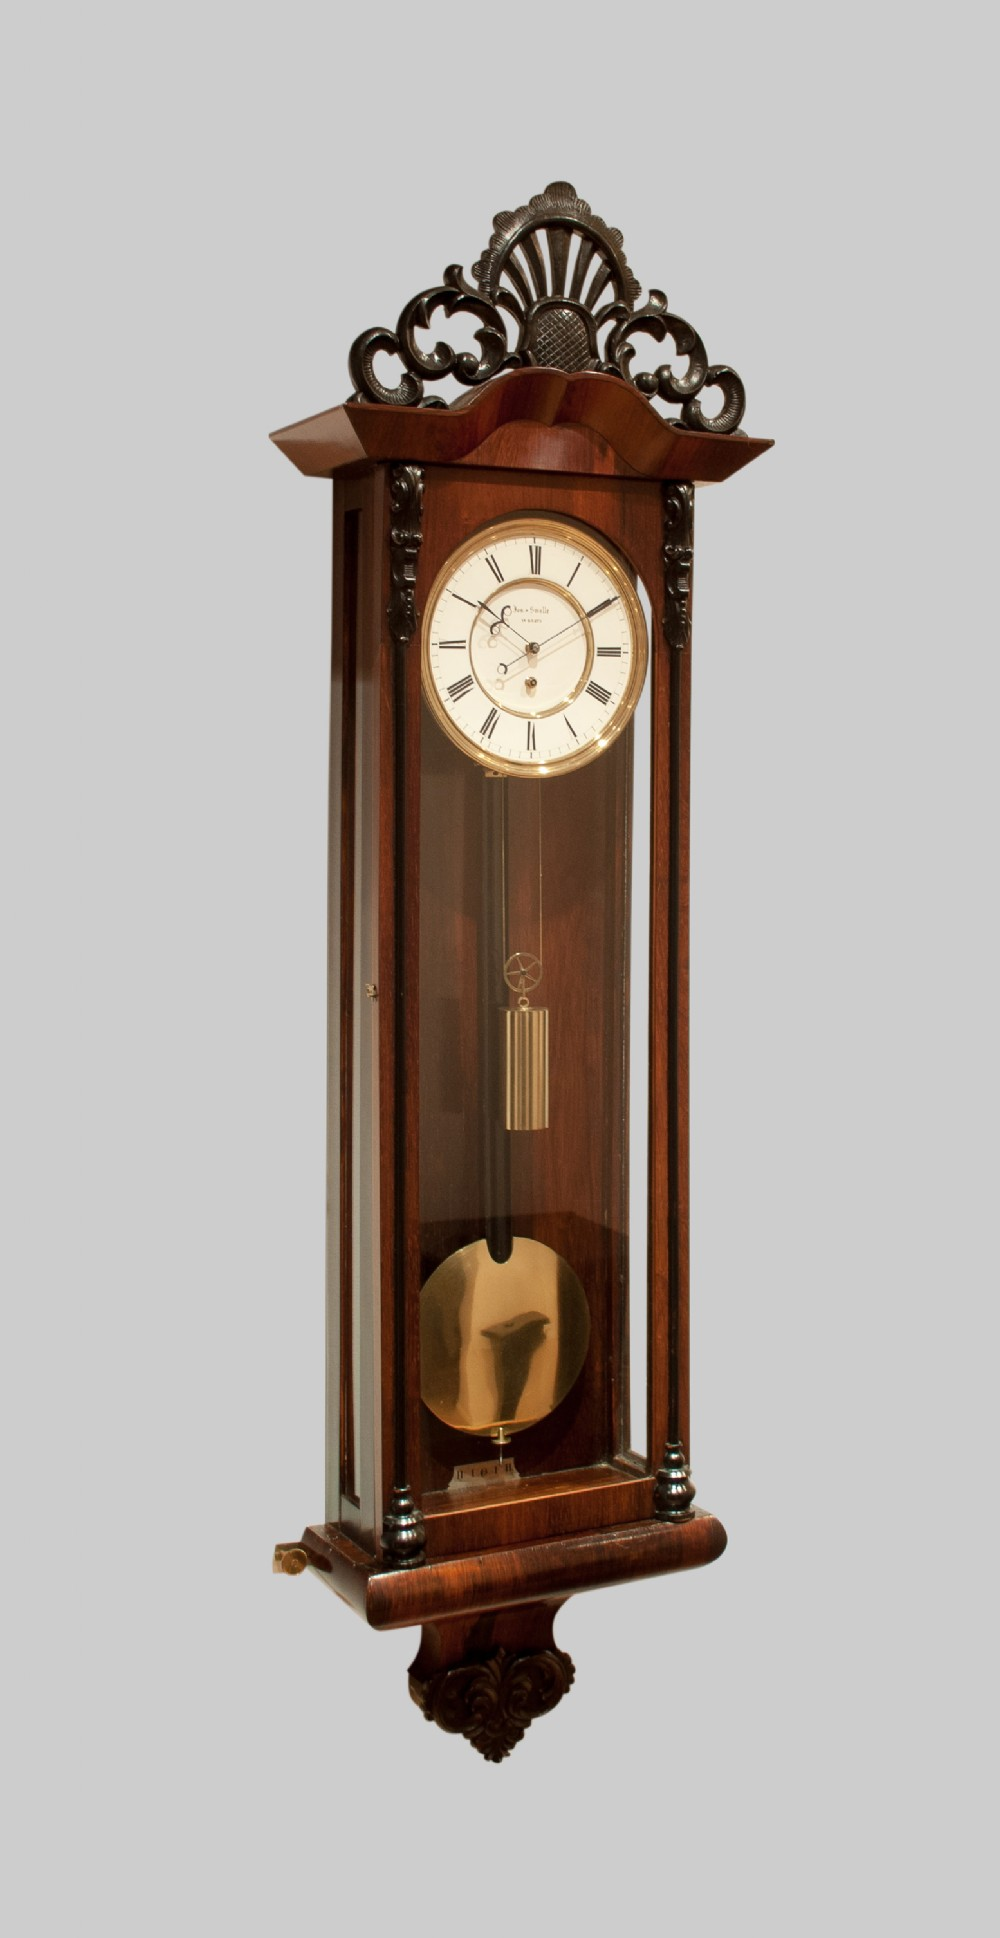 a fine quality biedermeier vienna regulator wall clock